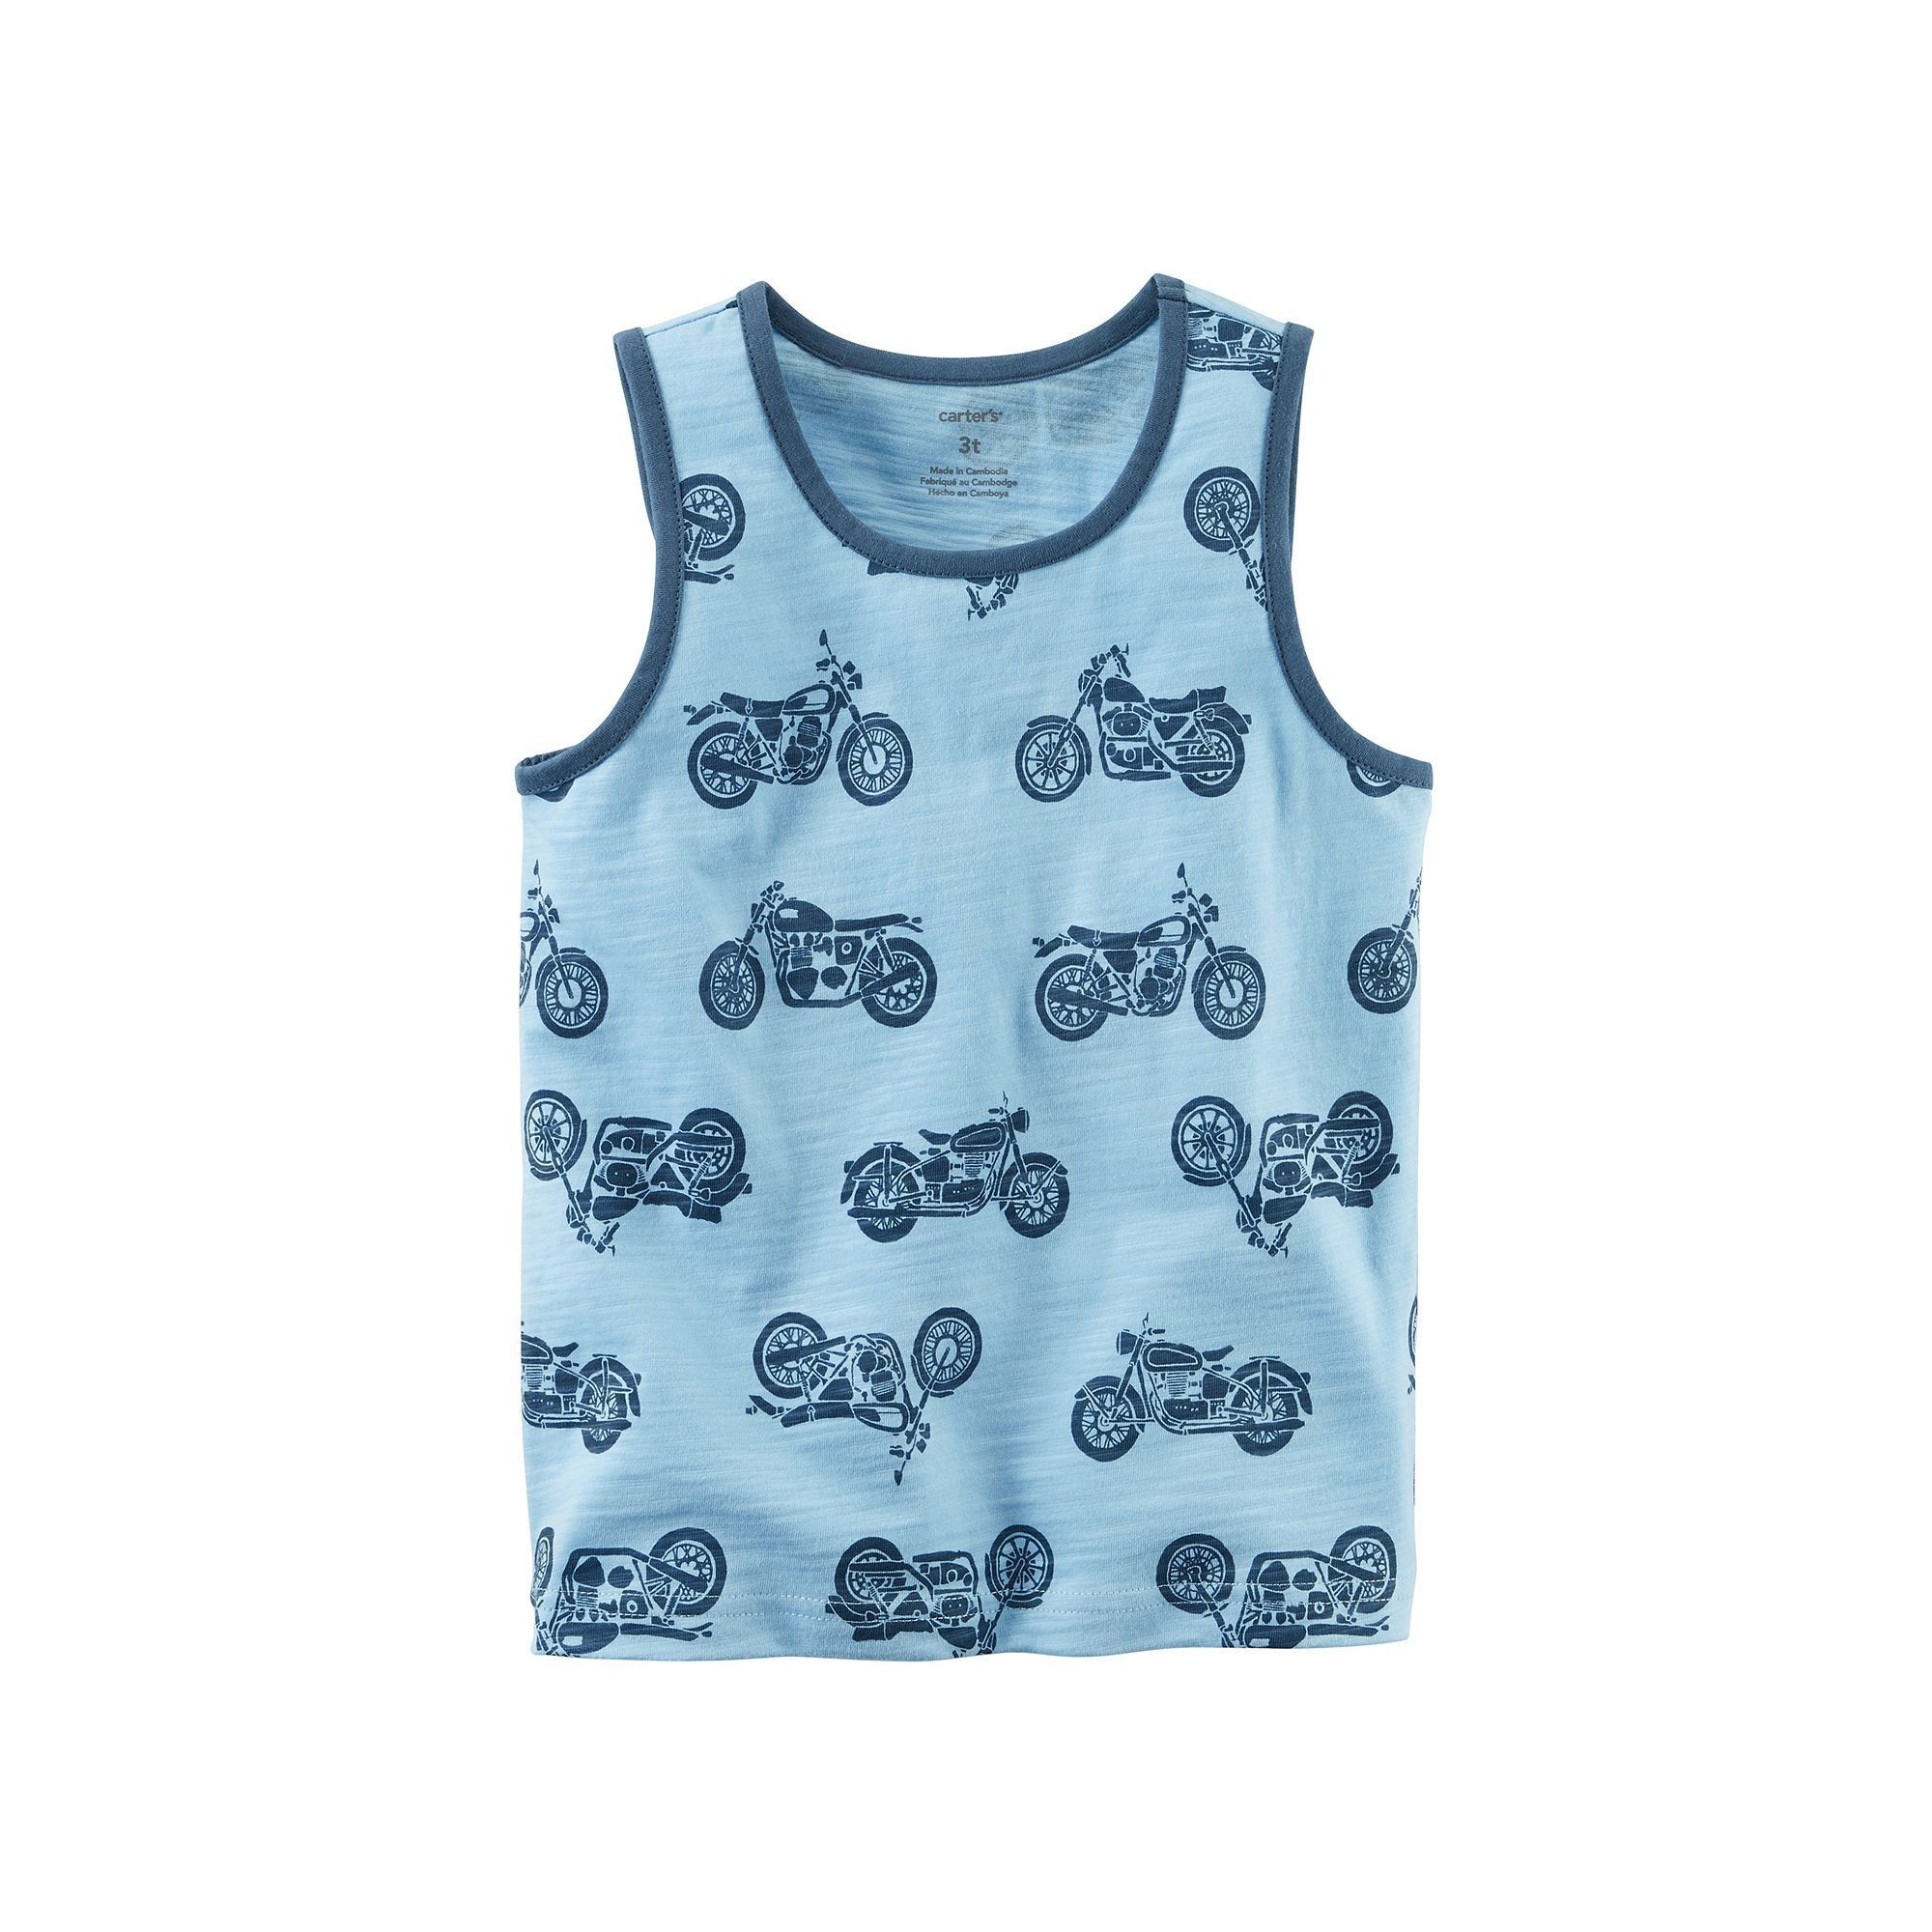 Baby Boy Carter s Printed Pattern Tank Top Size 24 Months Red